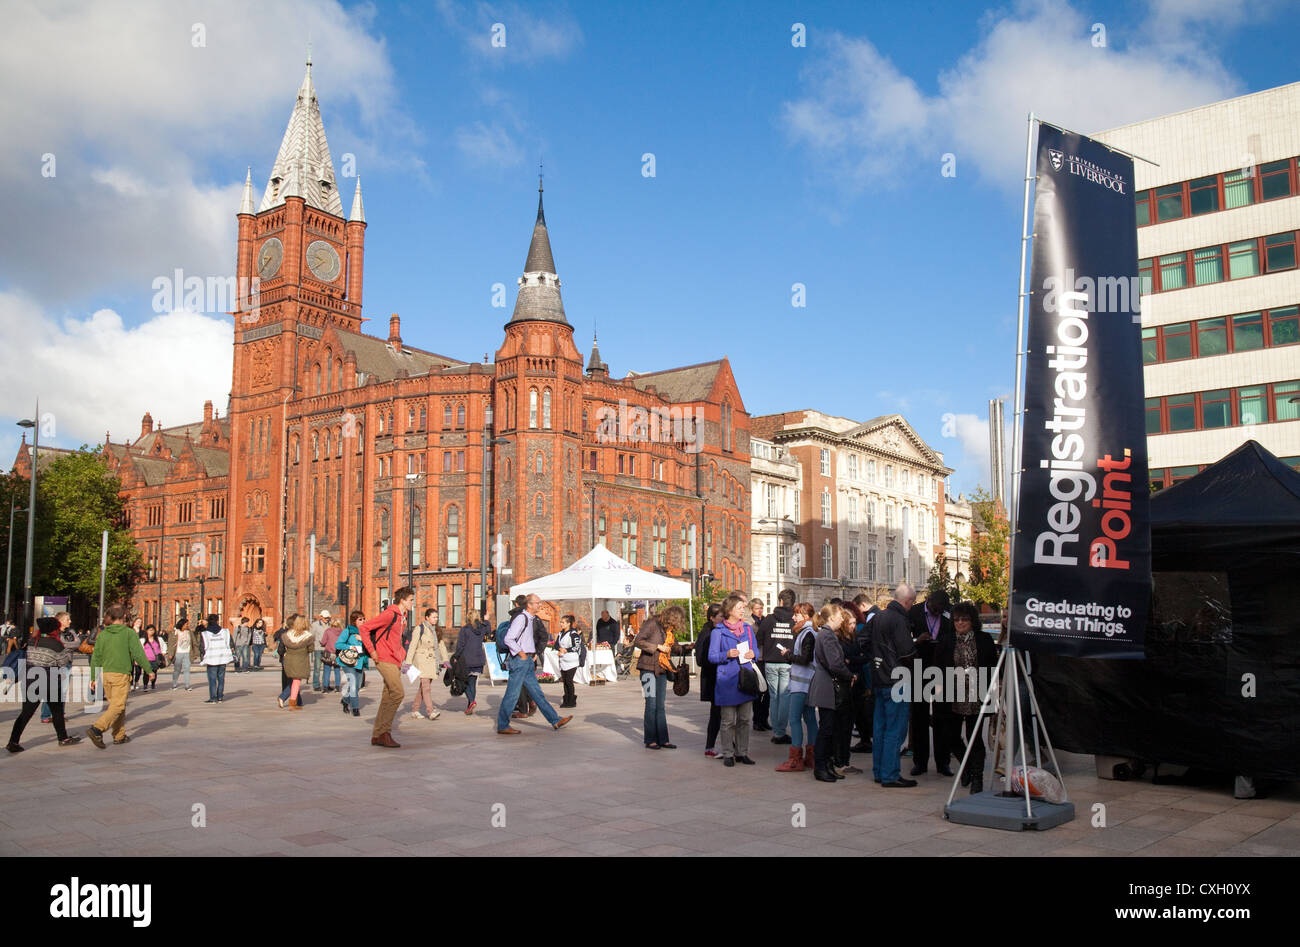 Students attending an Open Day at Liverpool University Campus, Liverpool UK - Stock Image